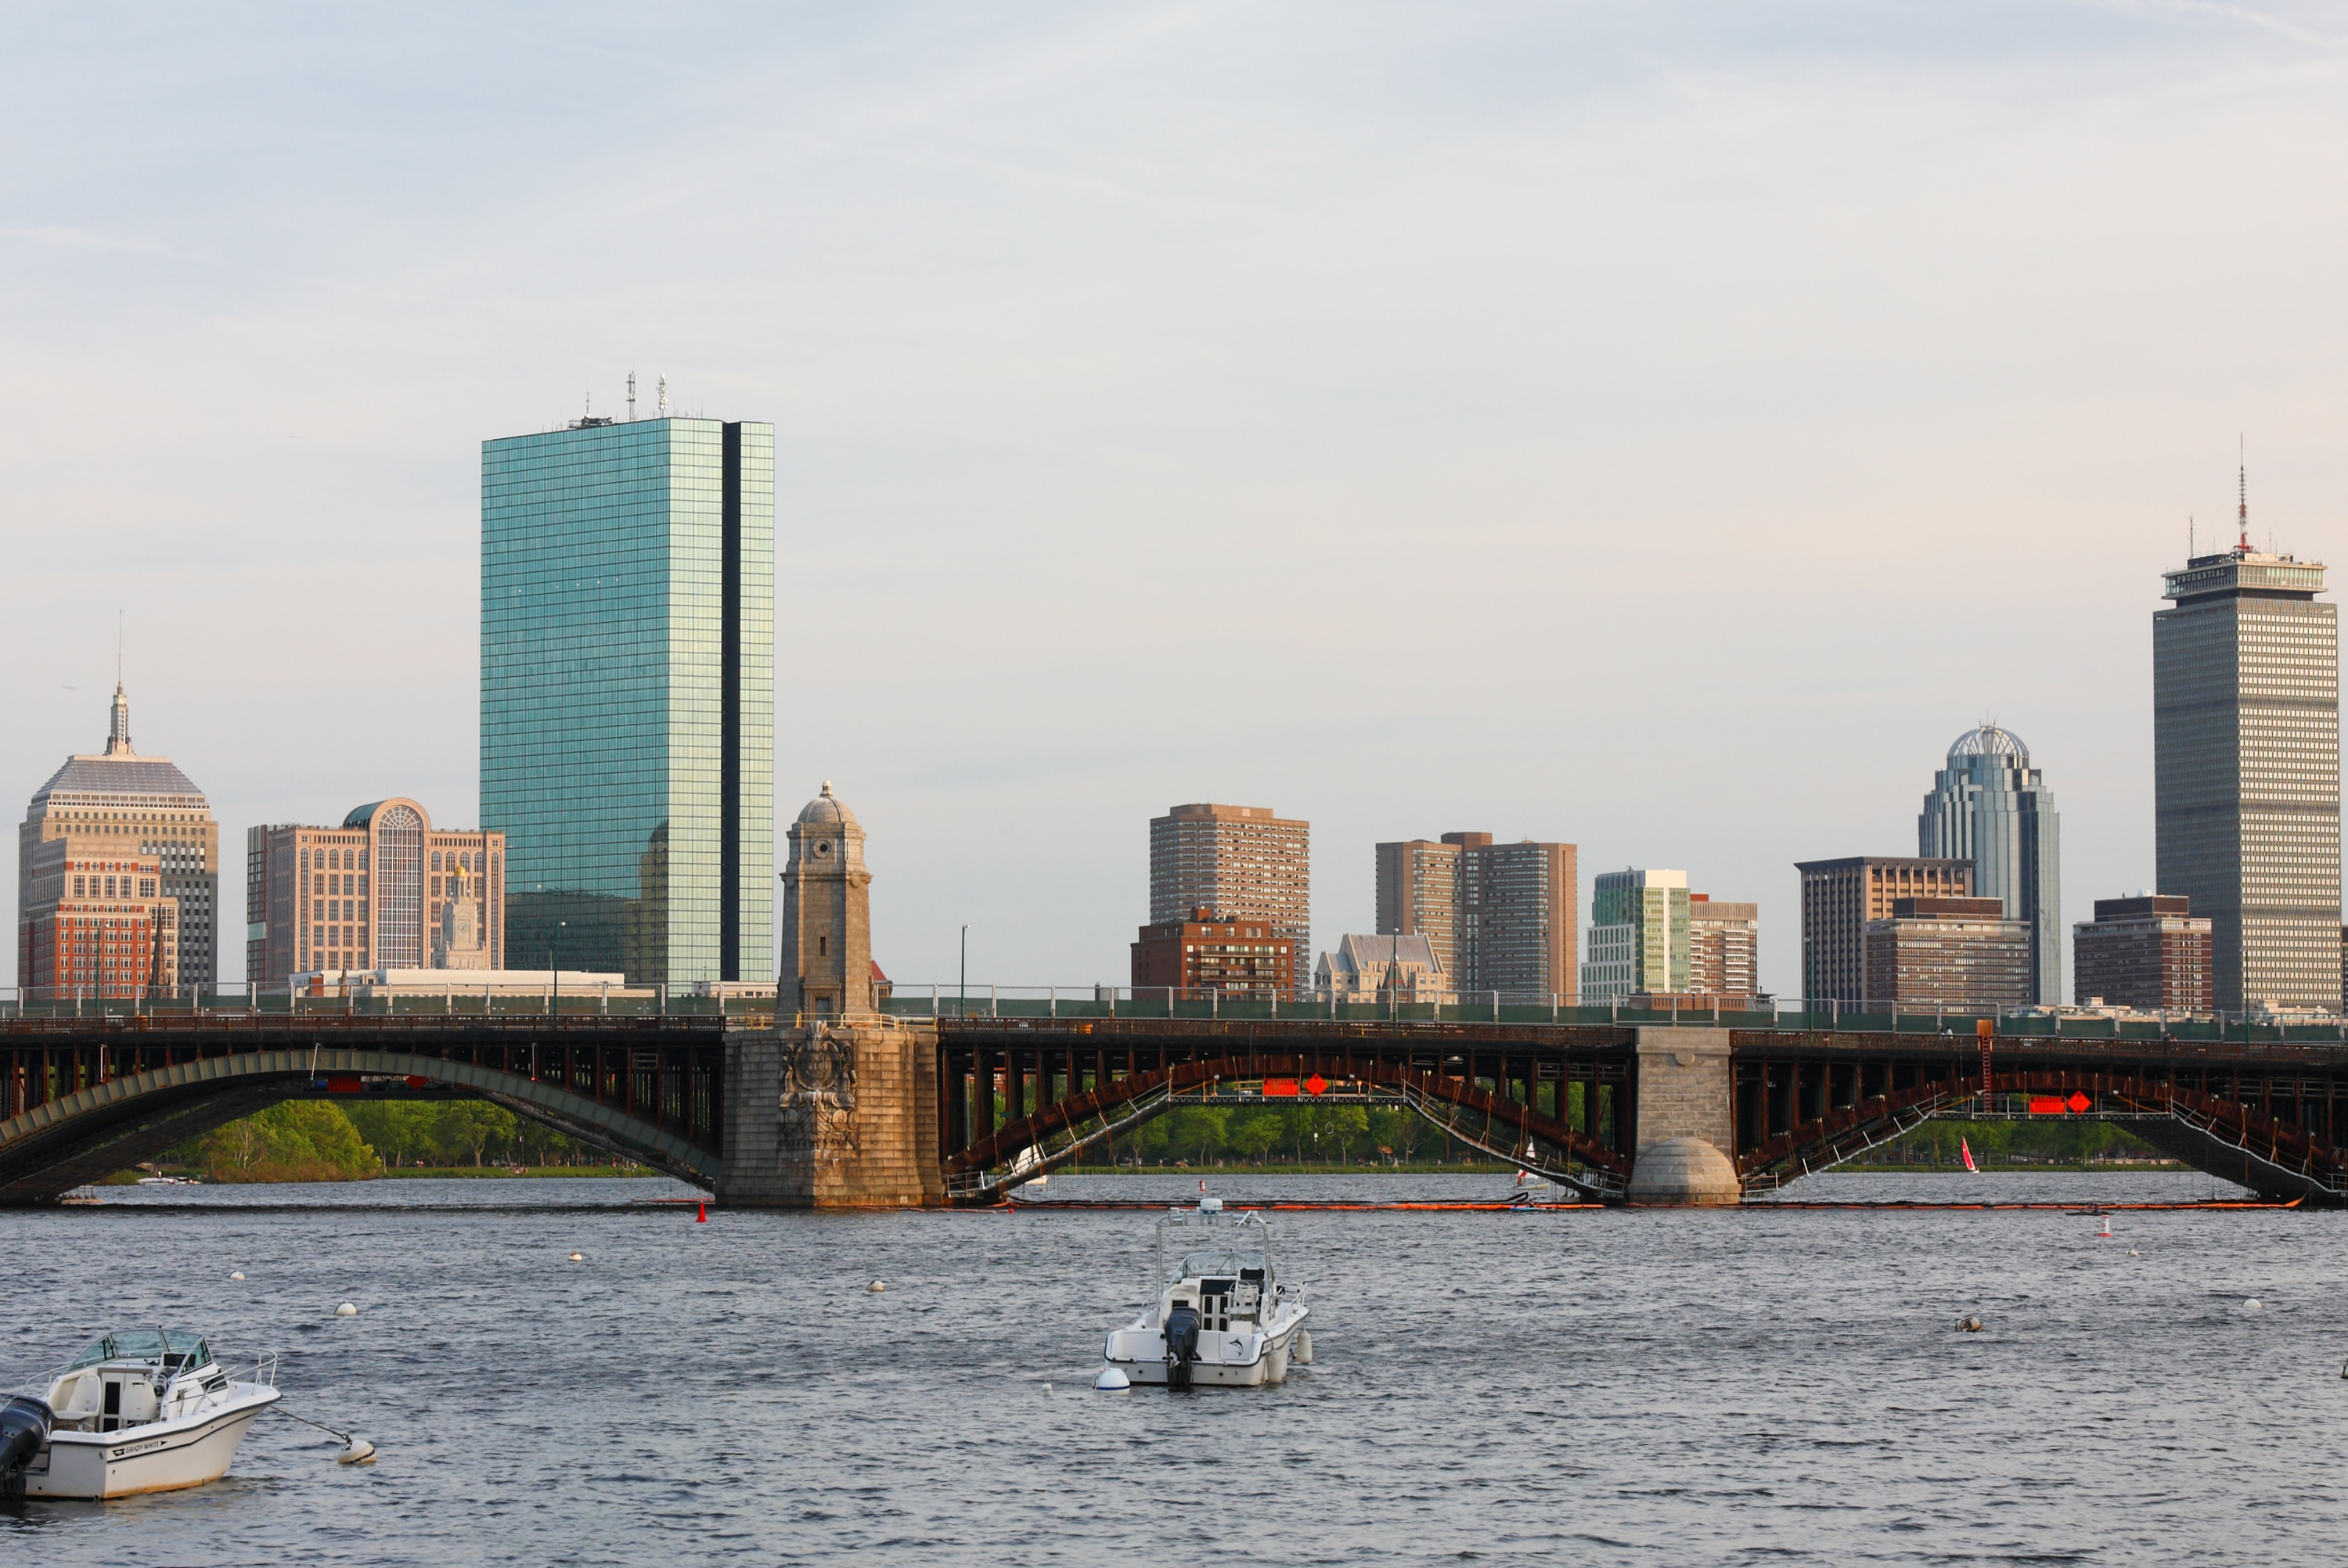 Best Cd Rates >> Best 41 Fun, Free or Cheap Things to Do and See in Boston, MA